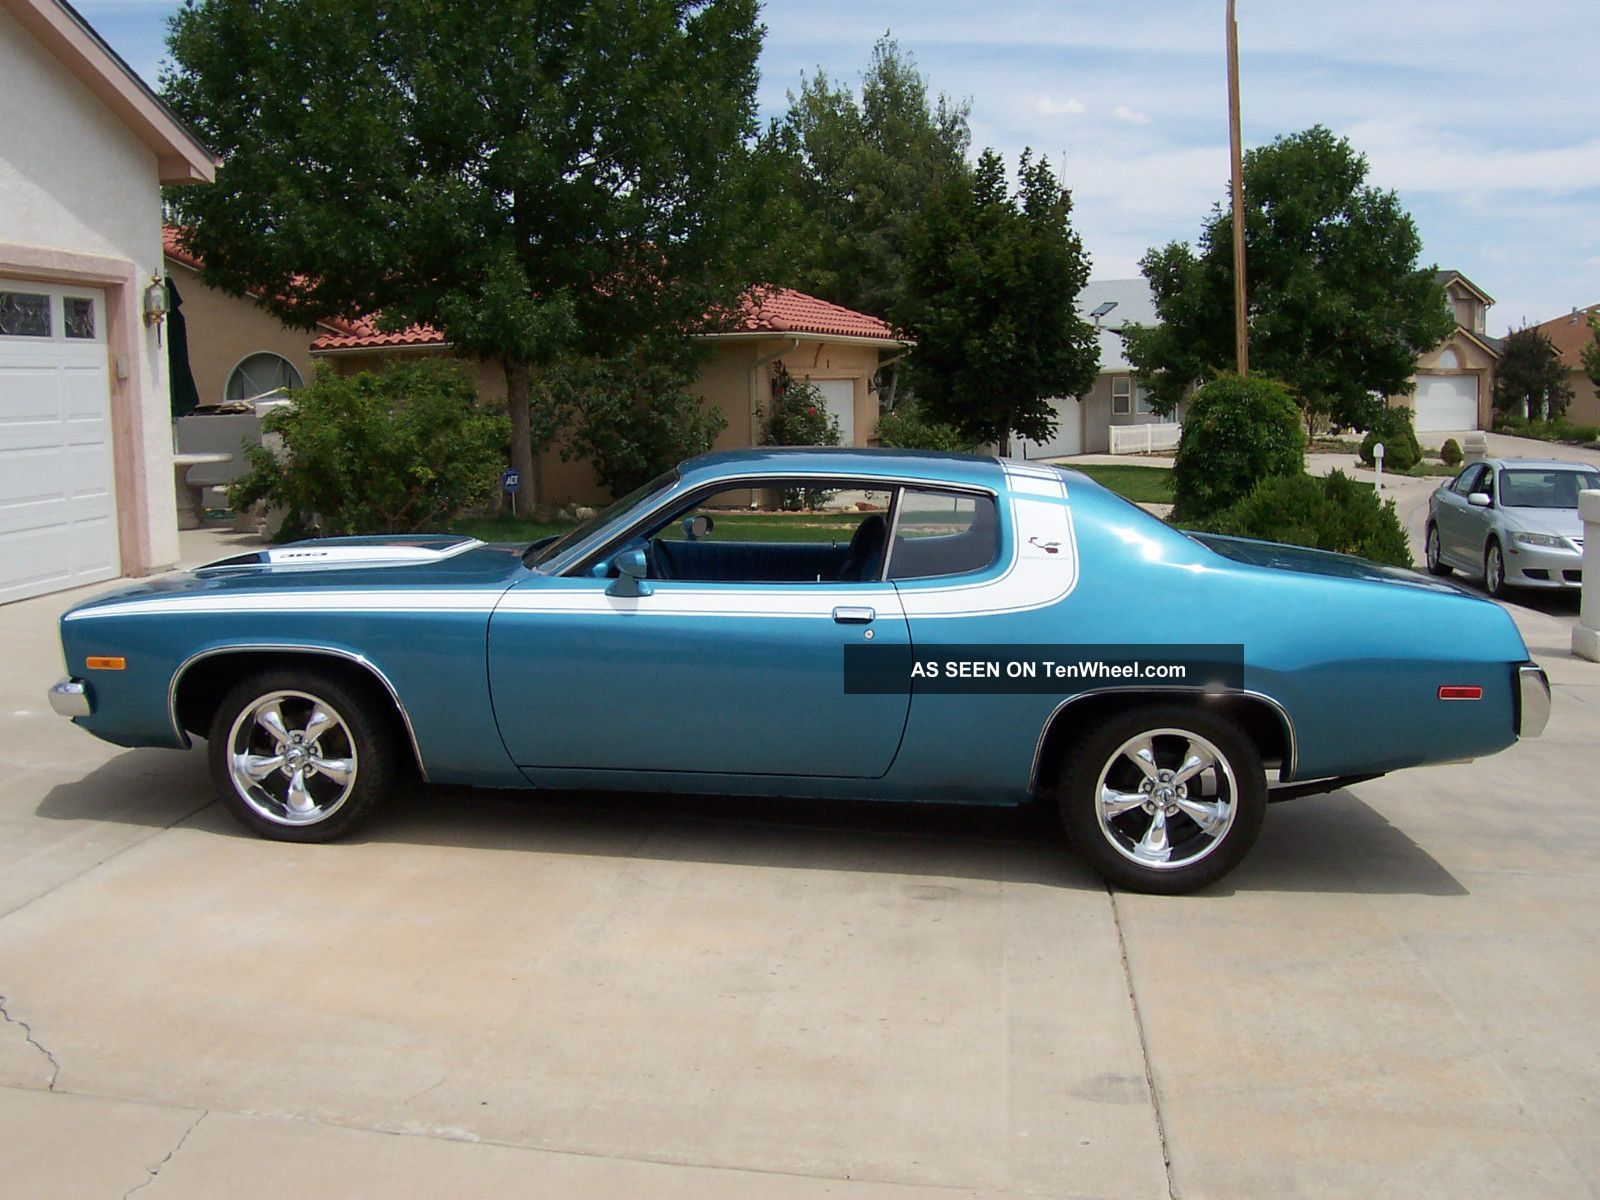 107931 further 2018 Dodge Challenger 0fa842bc0a0e0ae867dfbbaf15625476 furthermore Best Vehicles Under 50000 besides 2017 Dodge Challenger Custom Superbee Monroe MI 9693add10a0e08b92a497ccdb0a6bc32 further Dodge Adds Special Edition Packages For Charger Challenger. on dodge challenger fuel door black